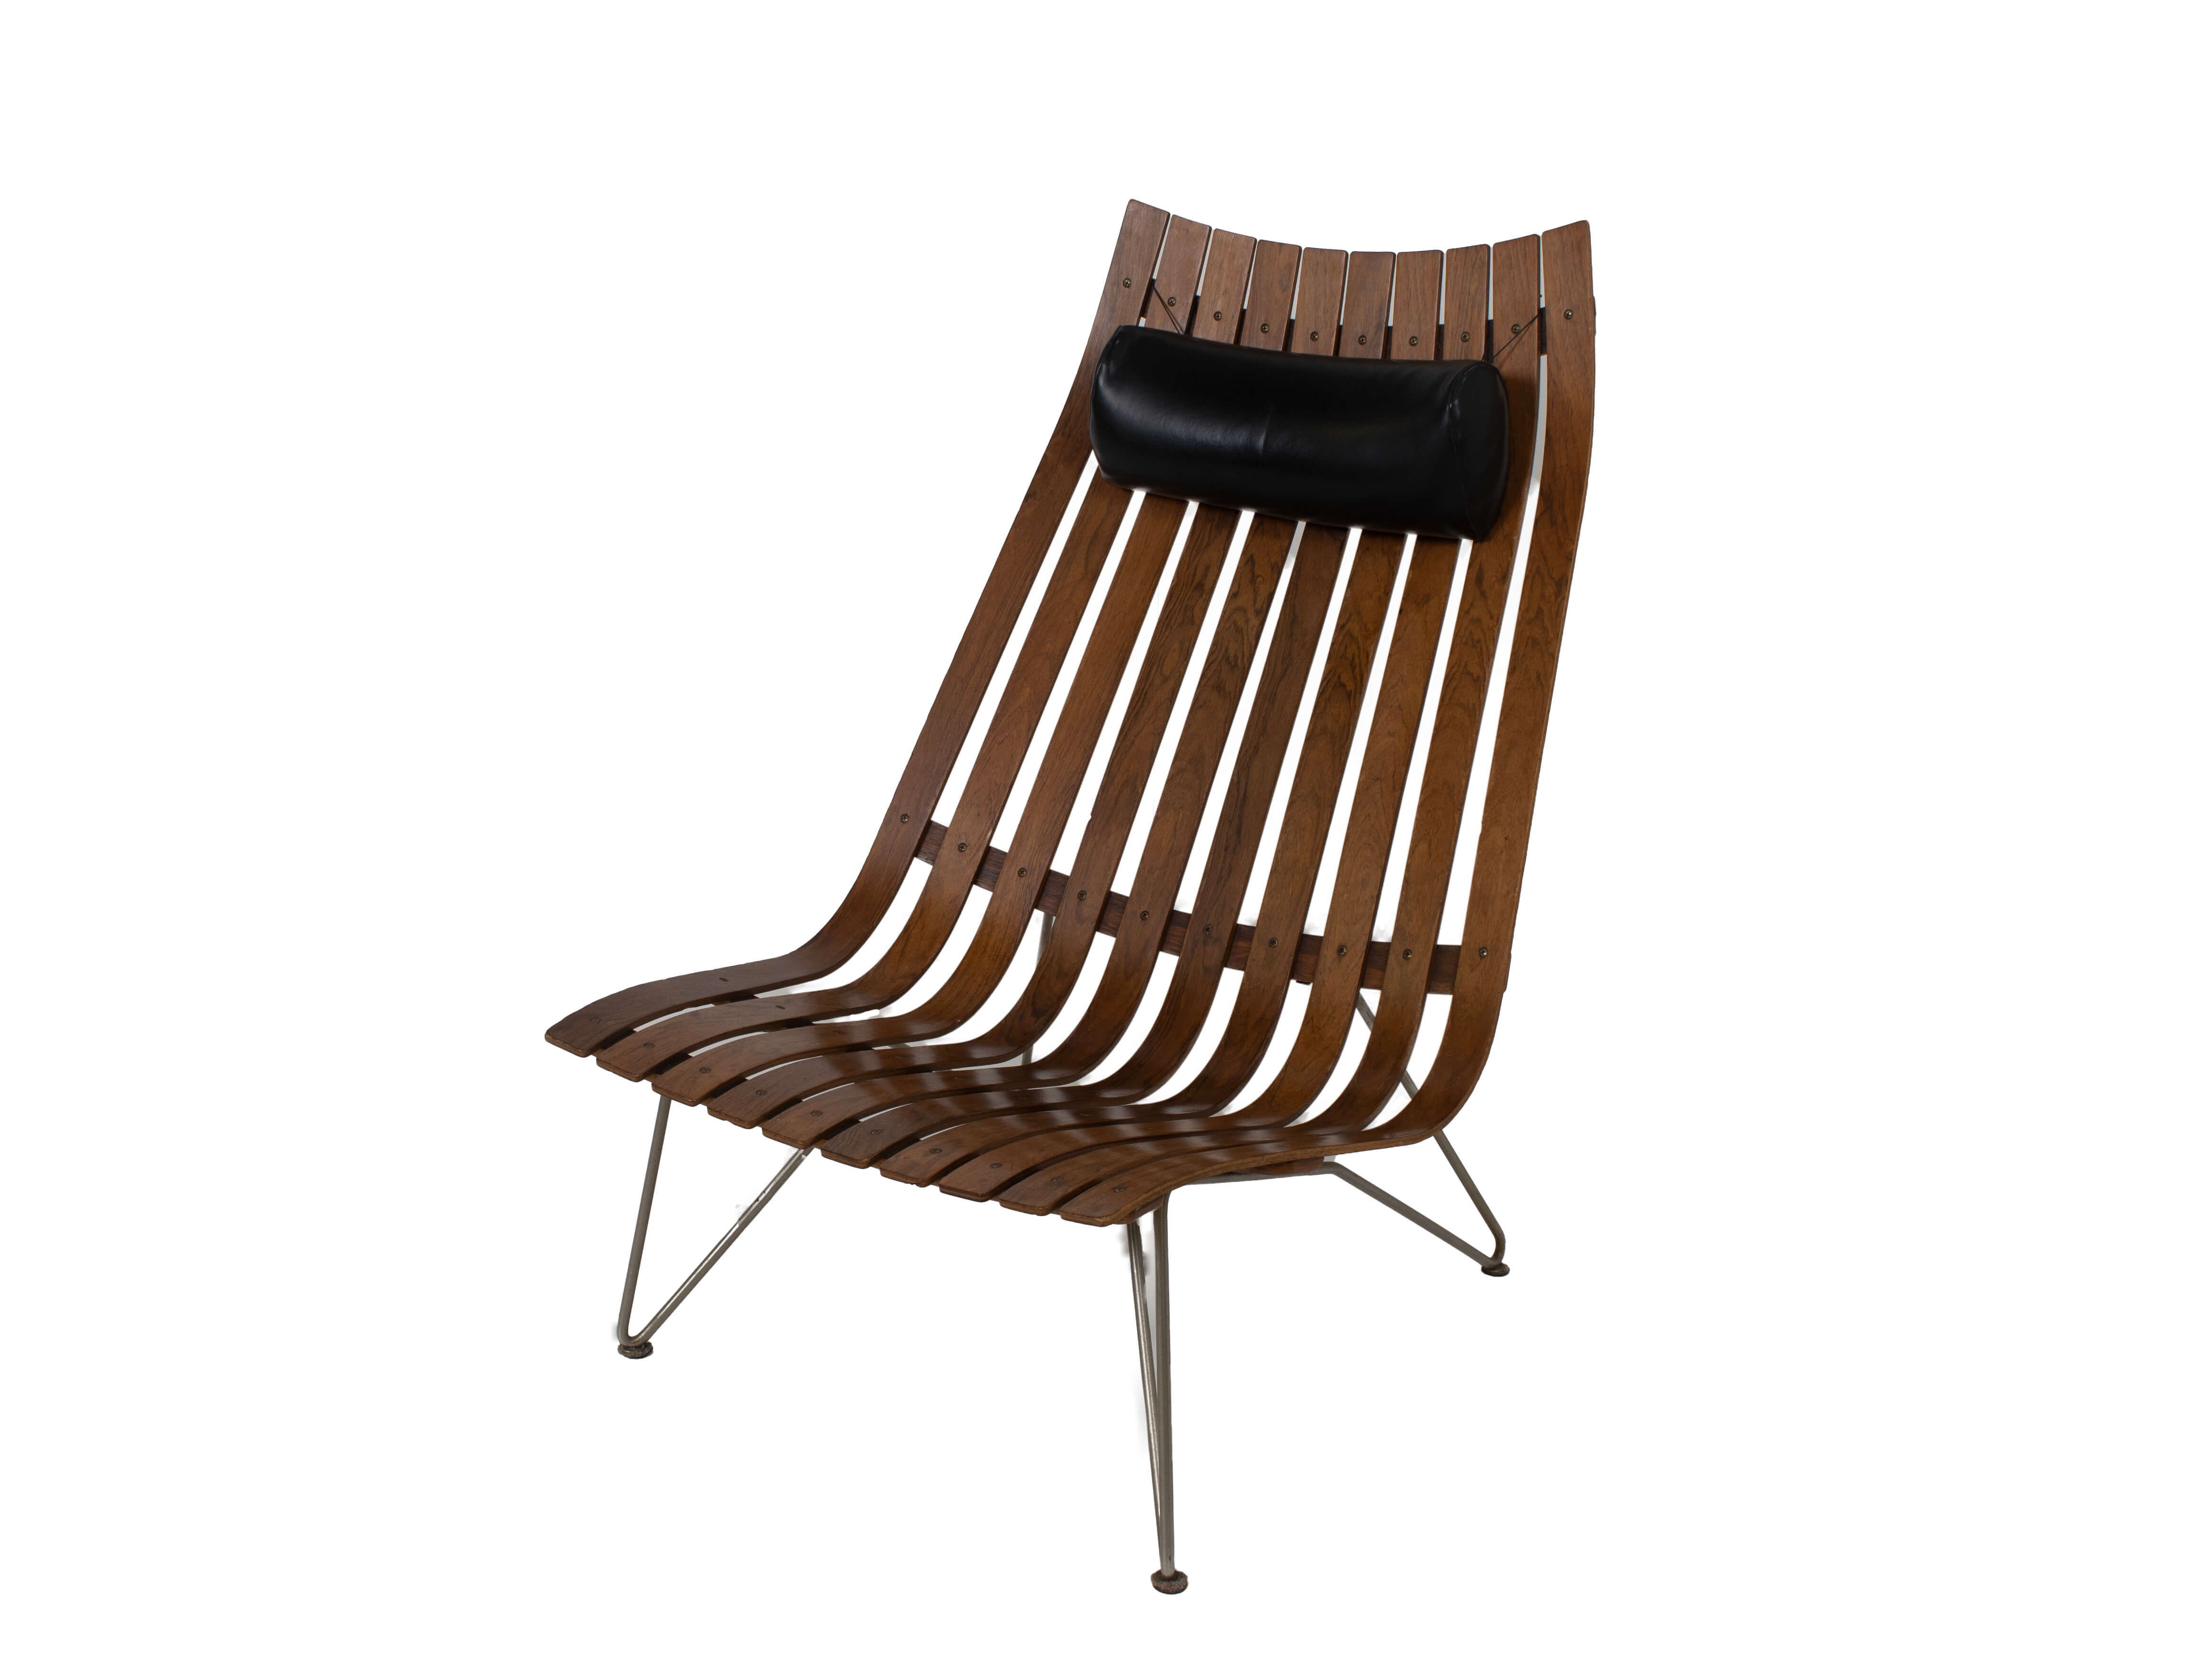 Lounge Chair by Hans Brattrud Model Scandia for Hove Møbler, Norway 1960s